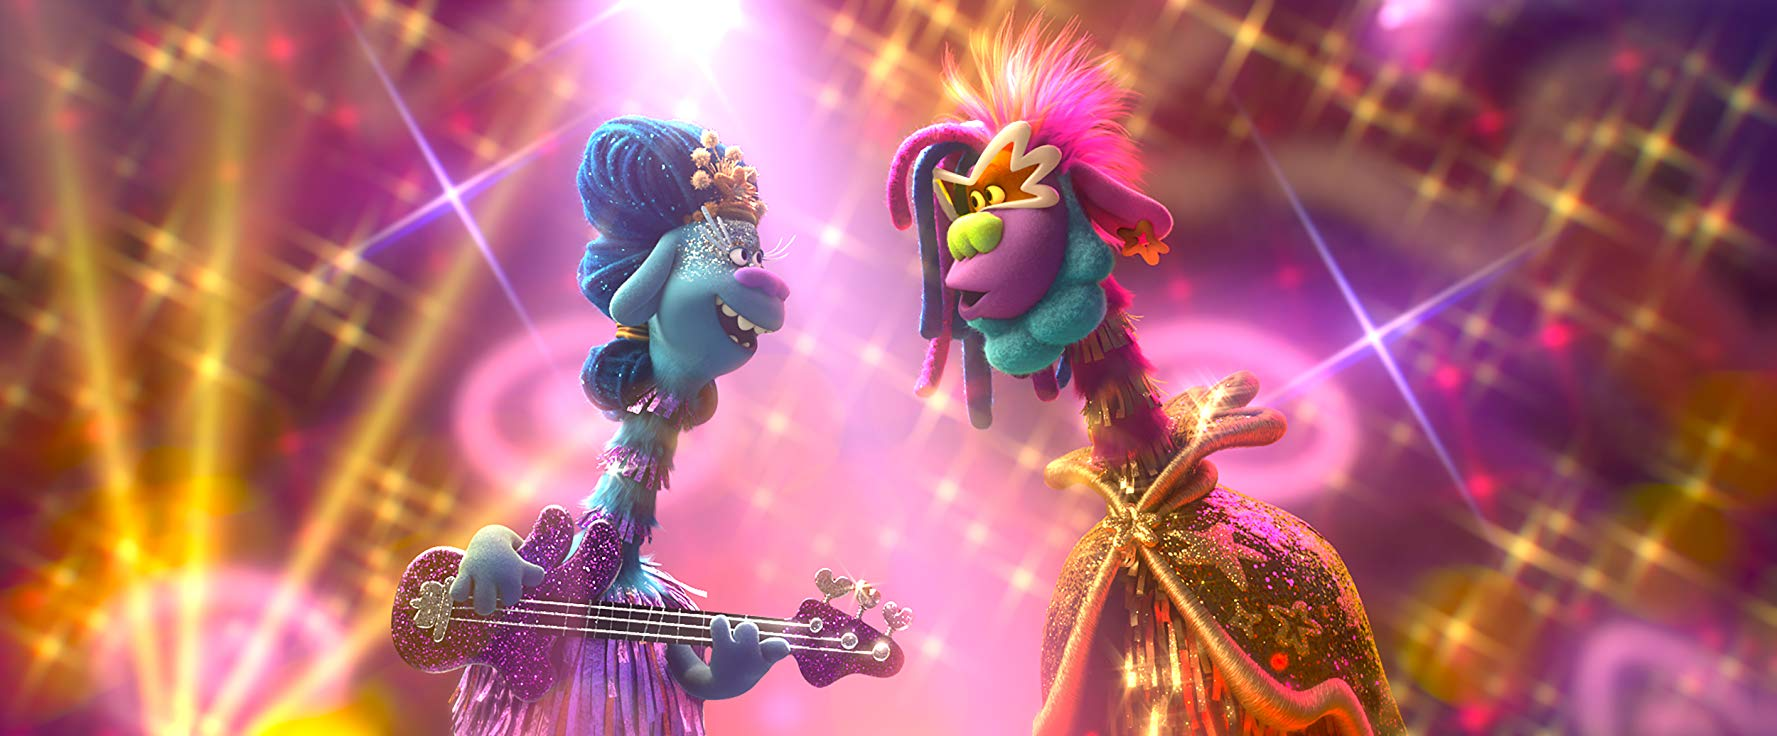 trolls 2 - Trolls 2 New Trailer is Here and its All Kinds of Music Except Afro Beats!